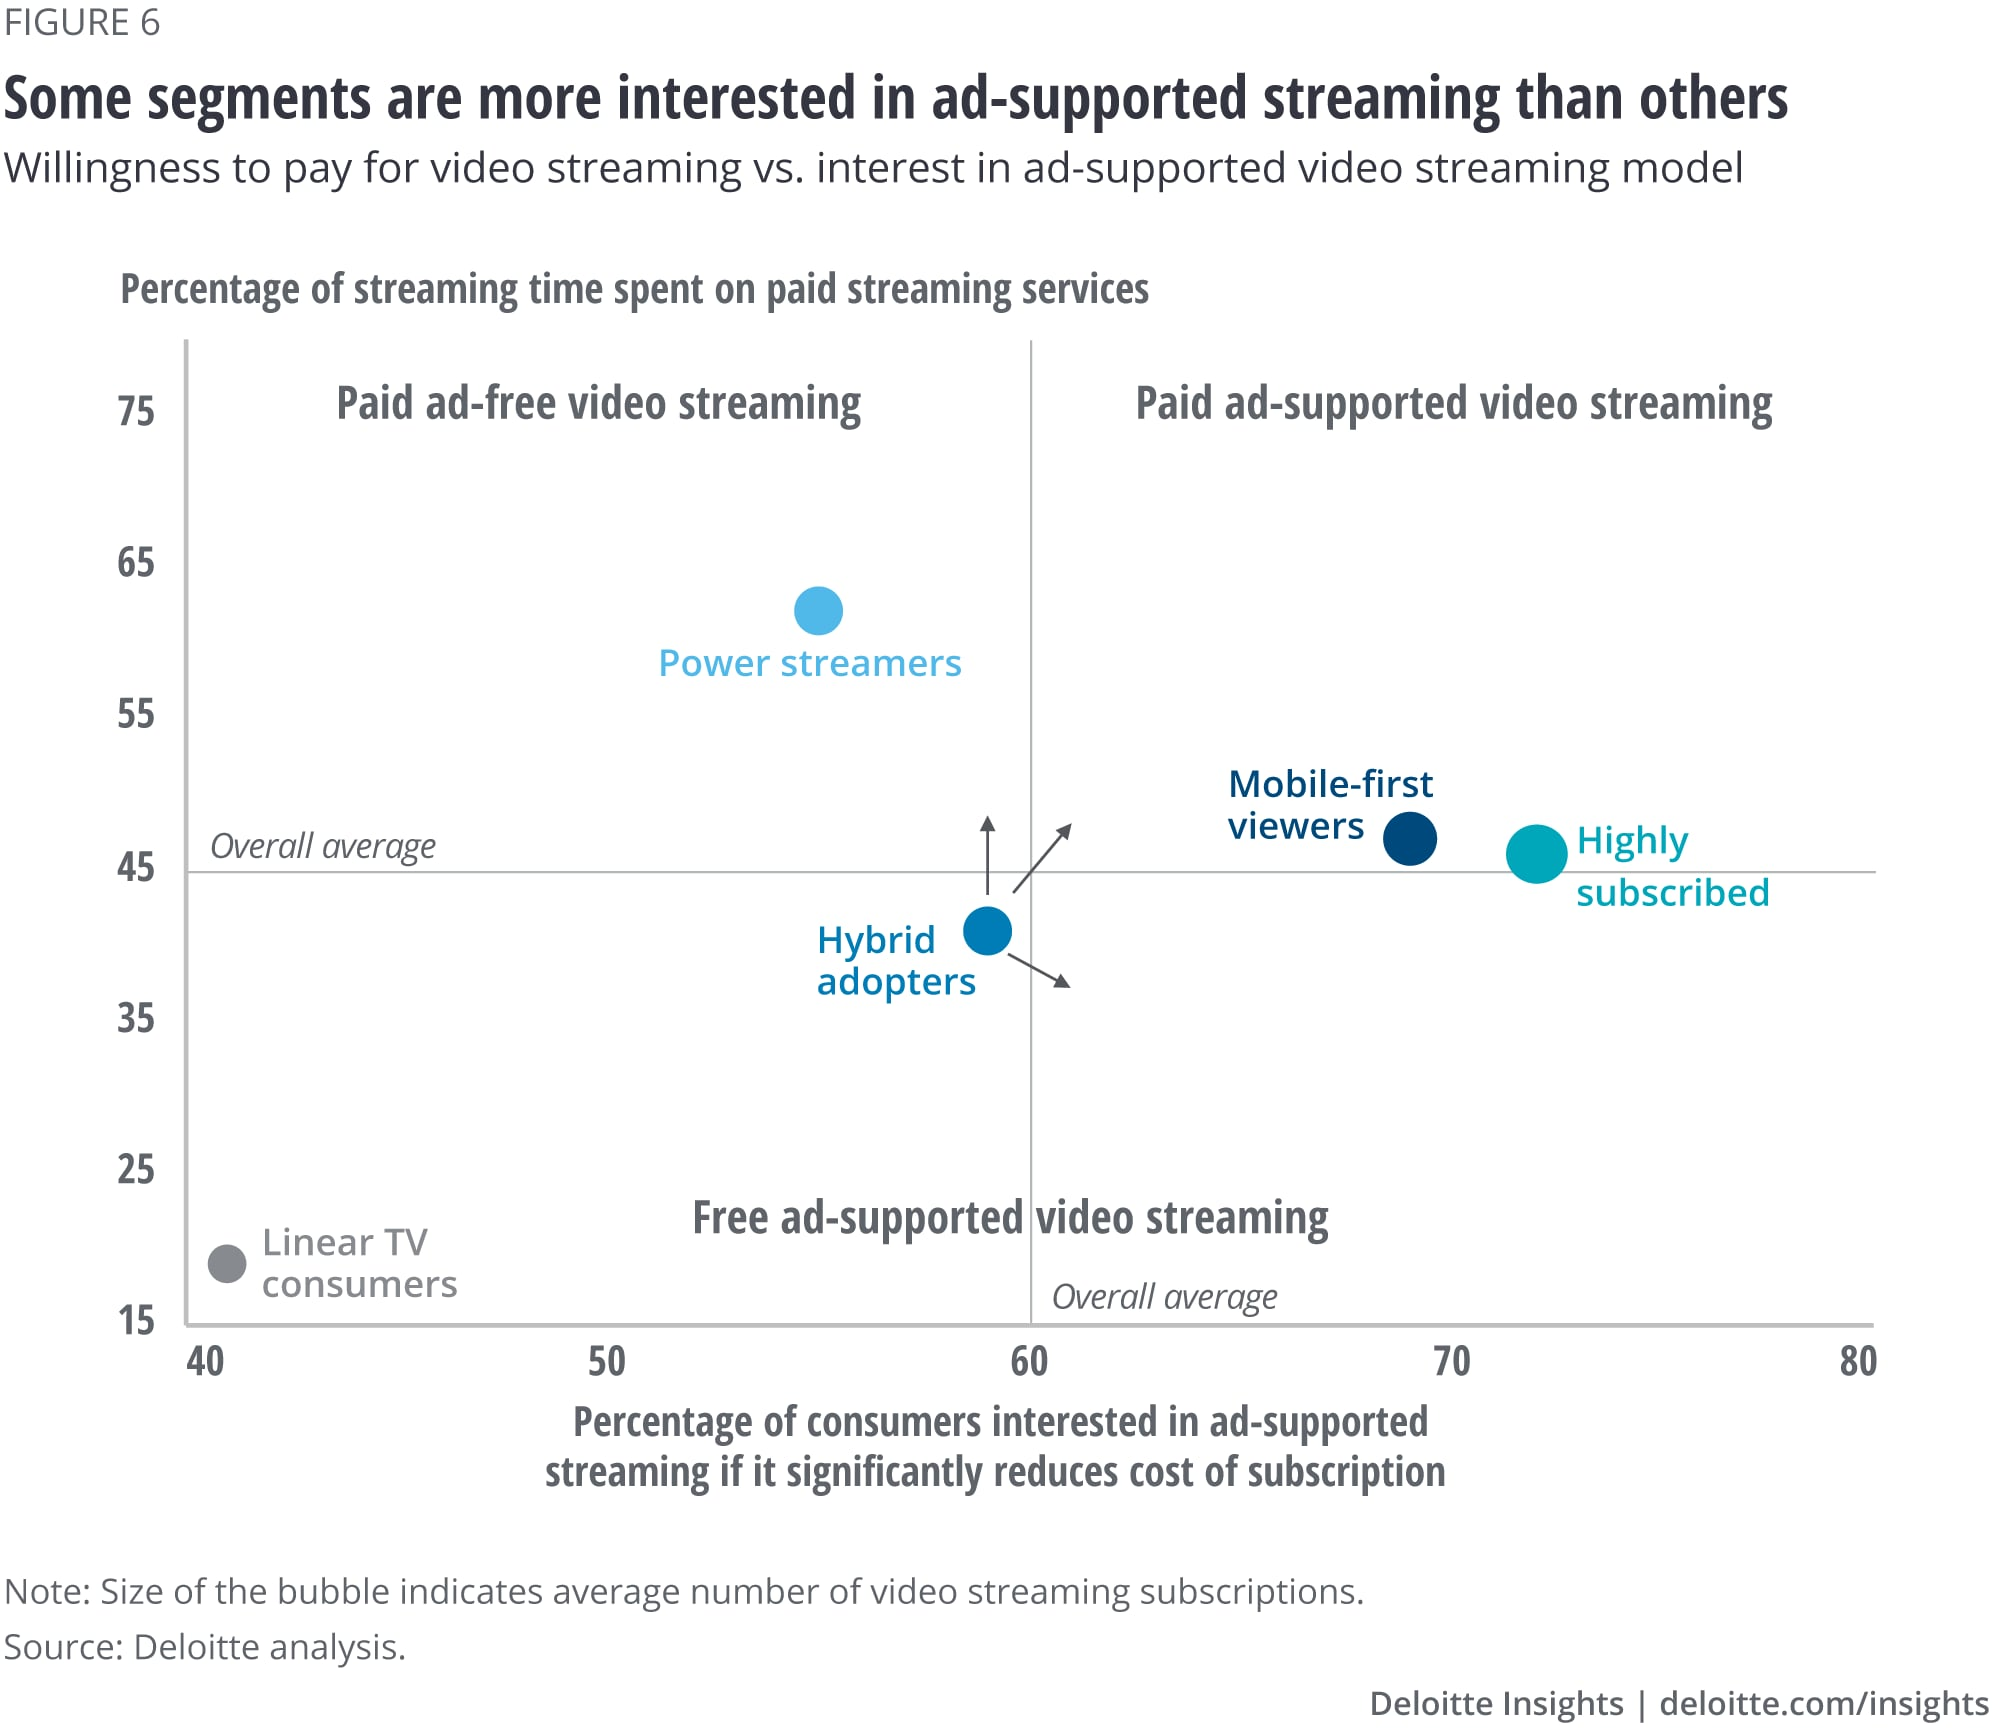 Some segments are more interested in ad-supported streaming than others